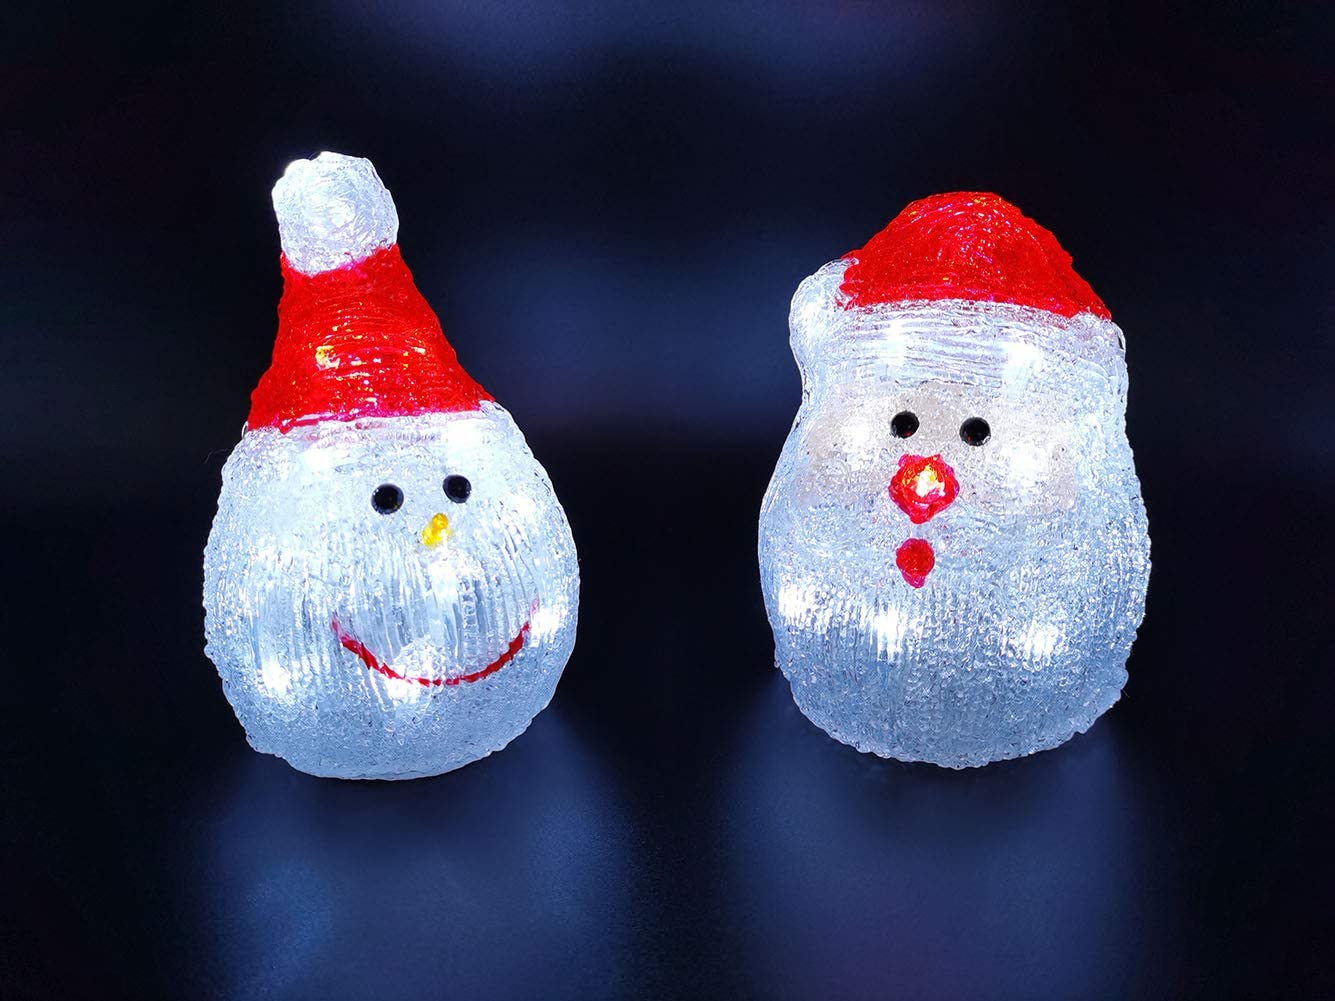 Christmas Snowman Santa Decorations Clearance for Kids 2PCS Set Outdoor Indoor Led Lighted Tabletop Decorations Battery Operated G-B002A